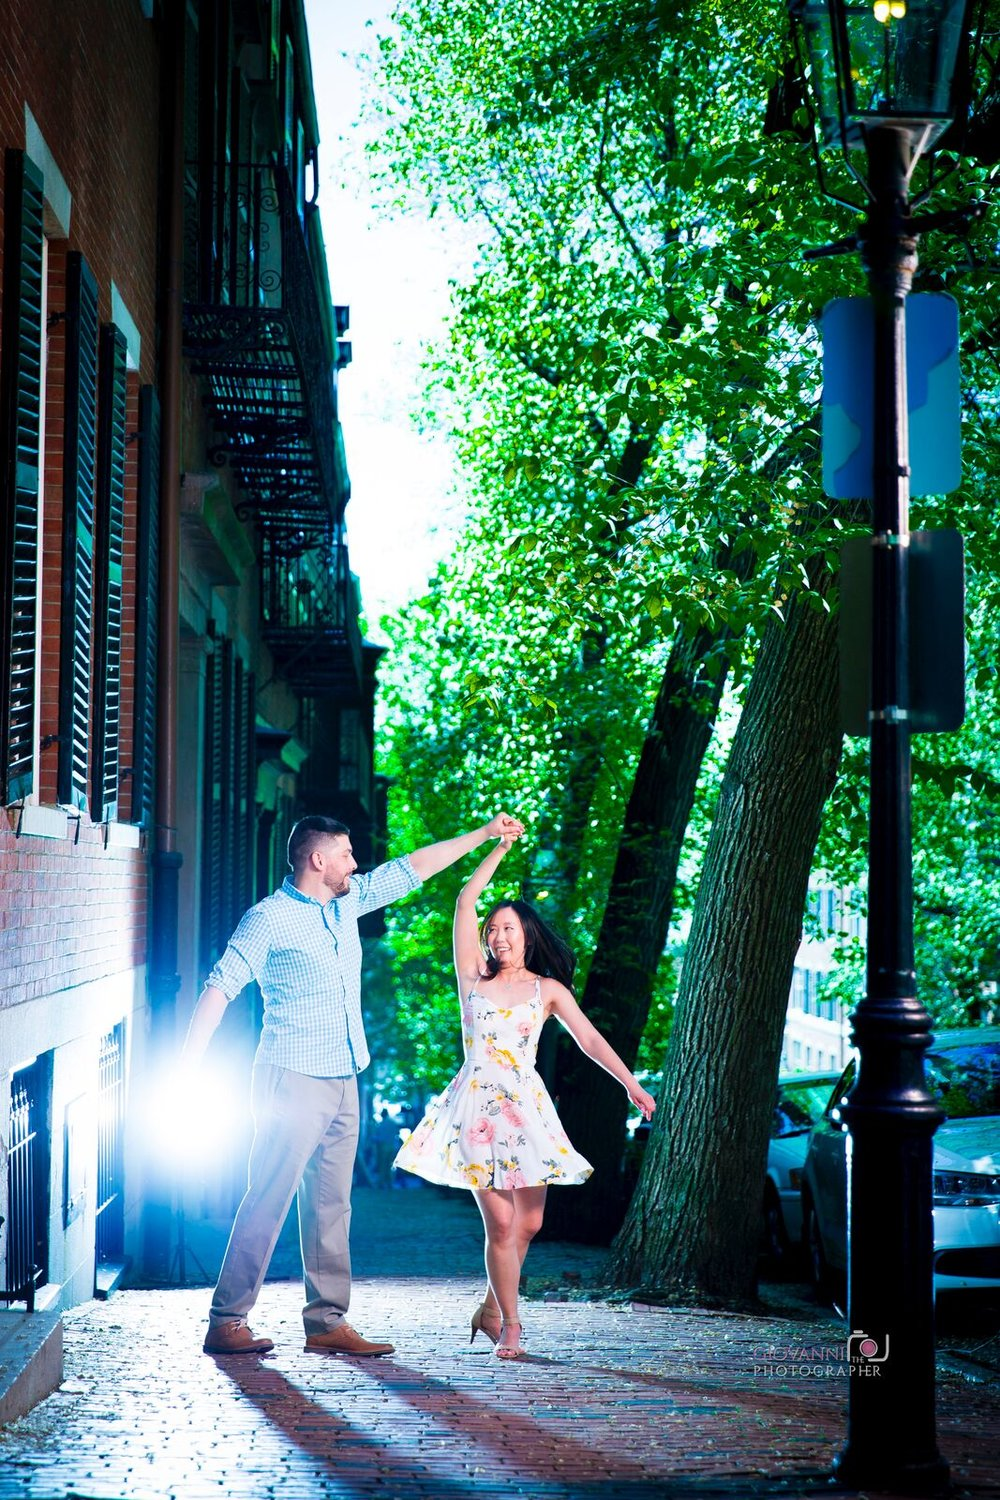 314A4308+Giovanni+The+Photographer+Top+Wedding+Photography+Boston+Engagement+Session+Acorn+Street+Boston+Ma.jpg